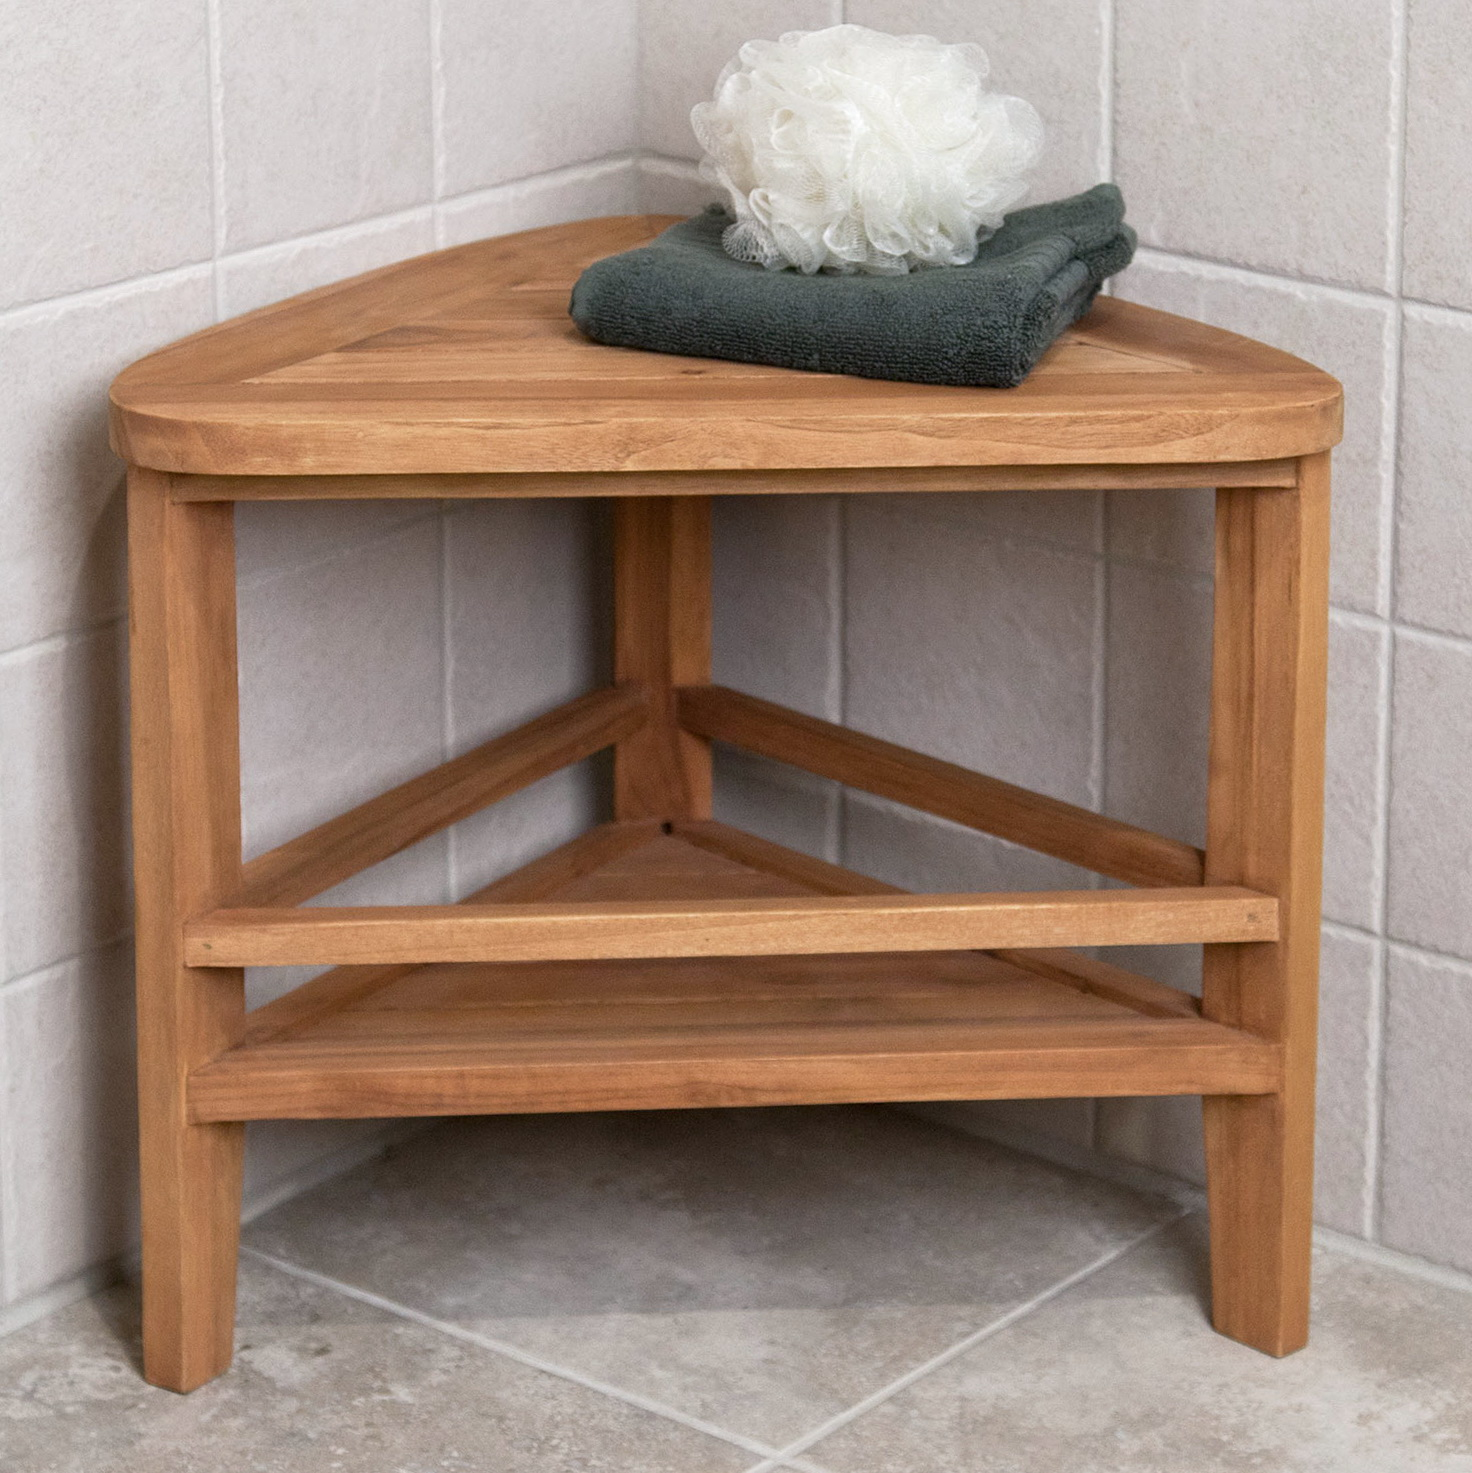 Teak Wood Shower Bench Target Home Design Ideas